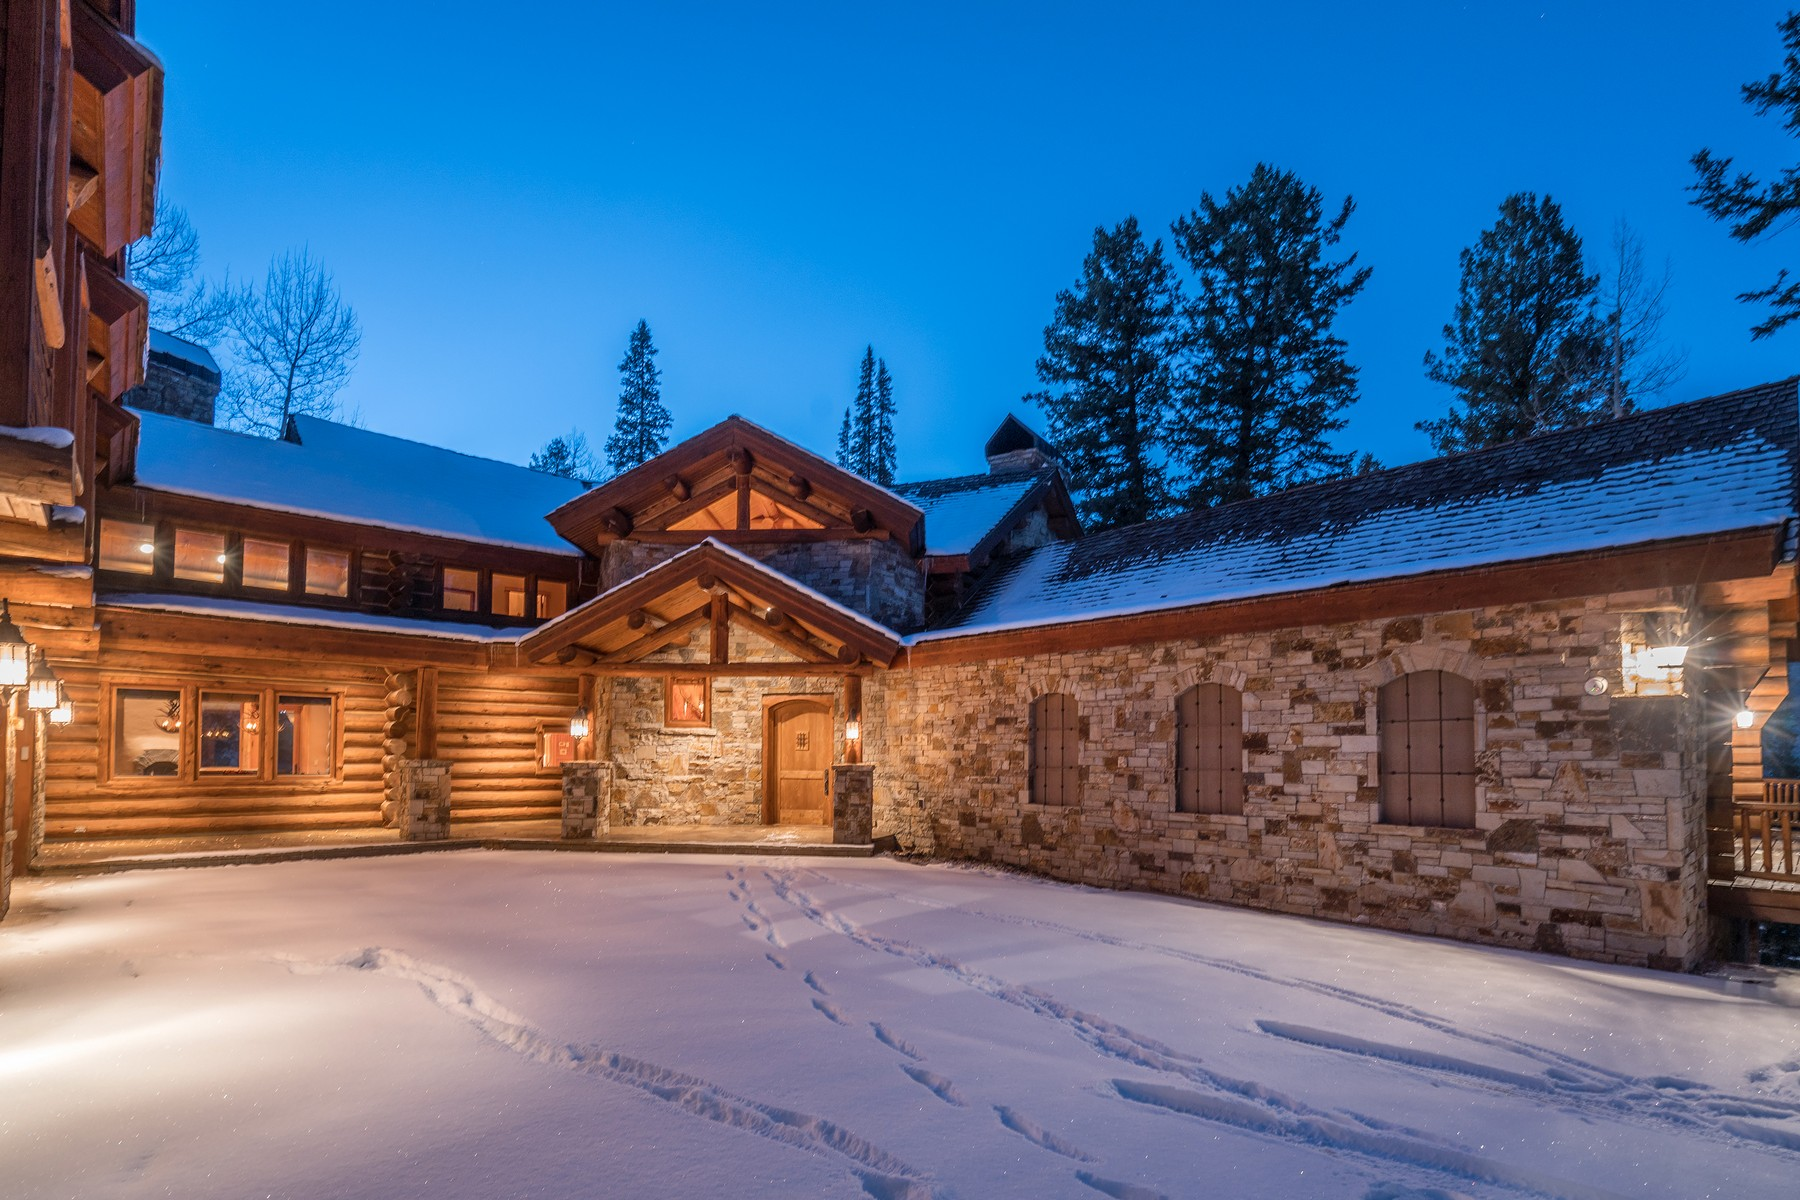 Single Family Home for Sale at 130 Highlands Way Telluride, Colorado, 81435 United States